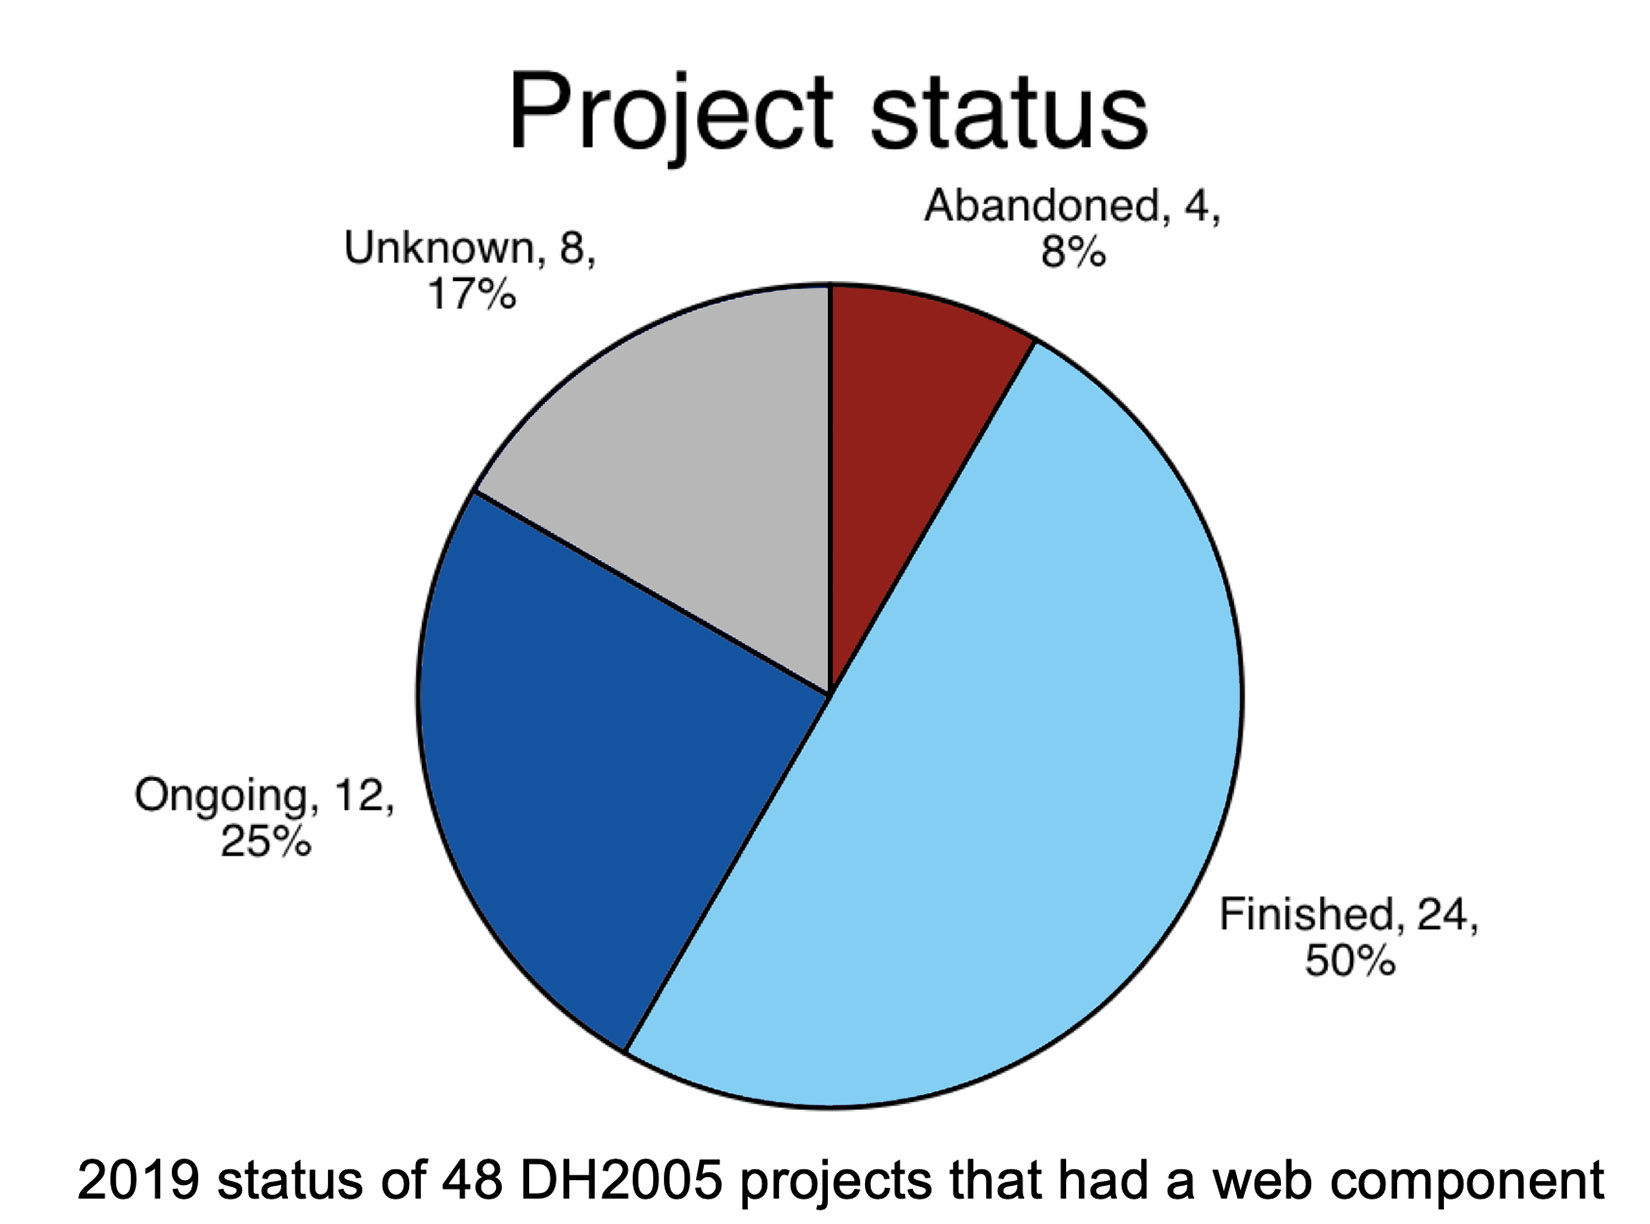 Pie chart of project status for DH 2005 projects with web component